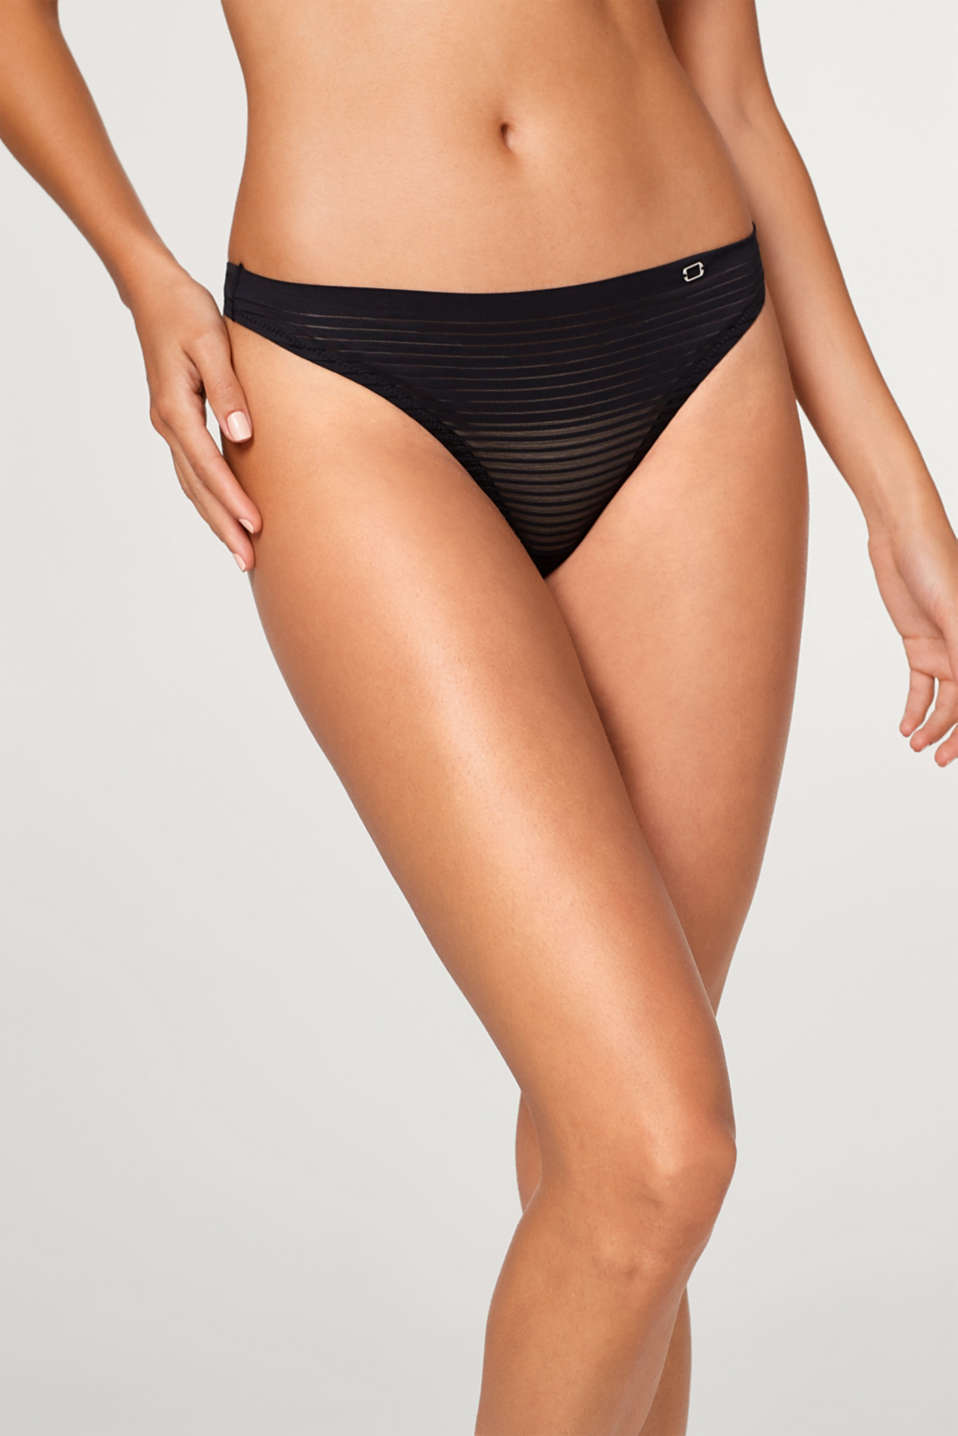 Esprit - NYE hipster thong with sheer micro stripes